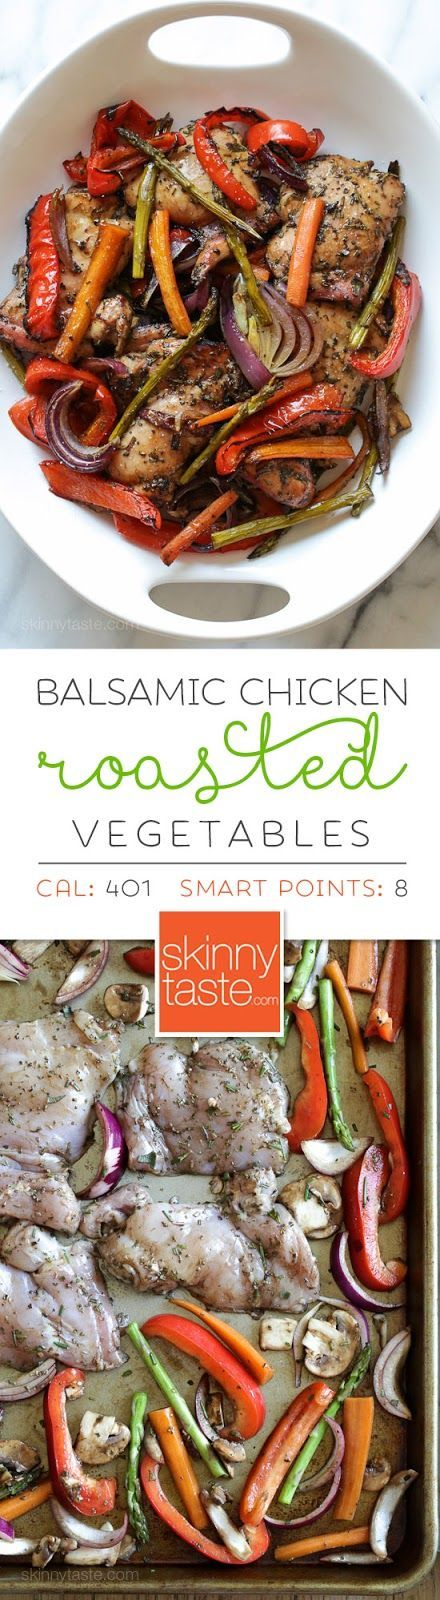 Balsamic Chicken with Roasted Vegetables – an easy, flavorful and low-carb sheet pan dinner! Smart Points: 8 Calories: 401 Whole30 friendly!